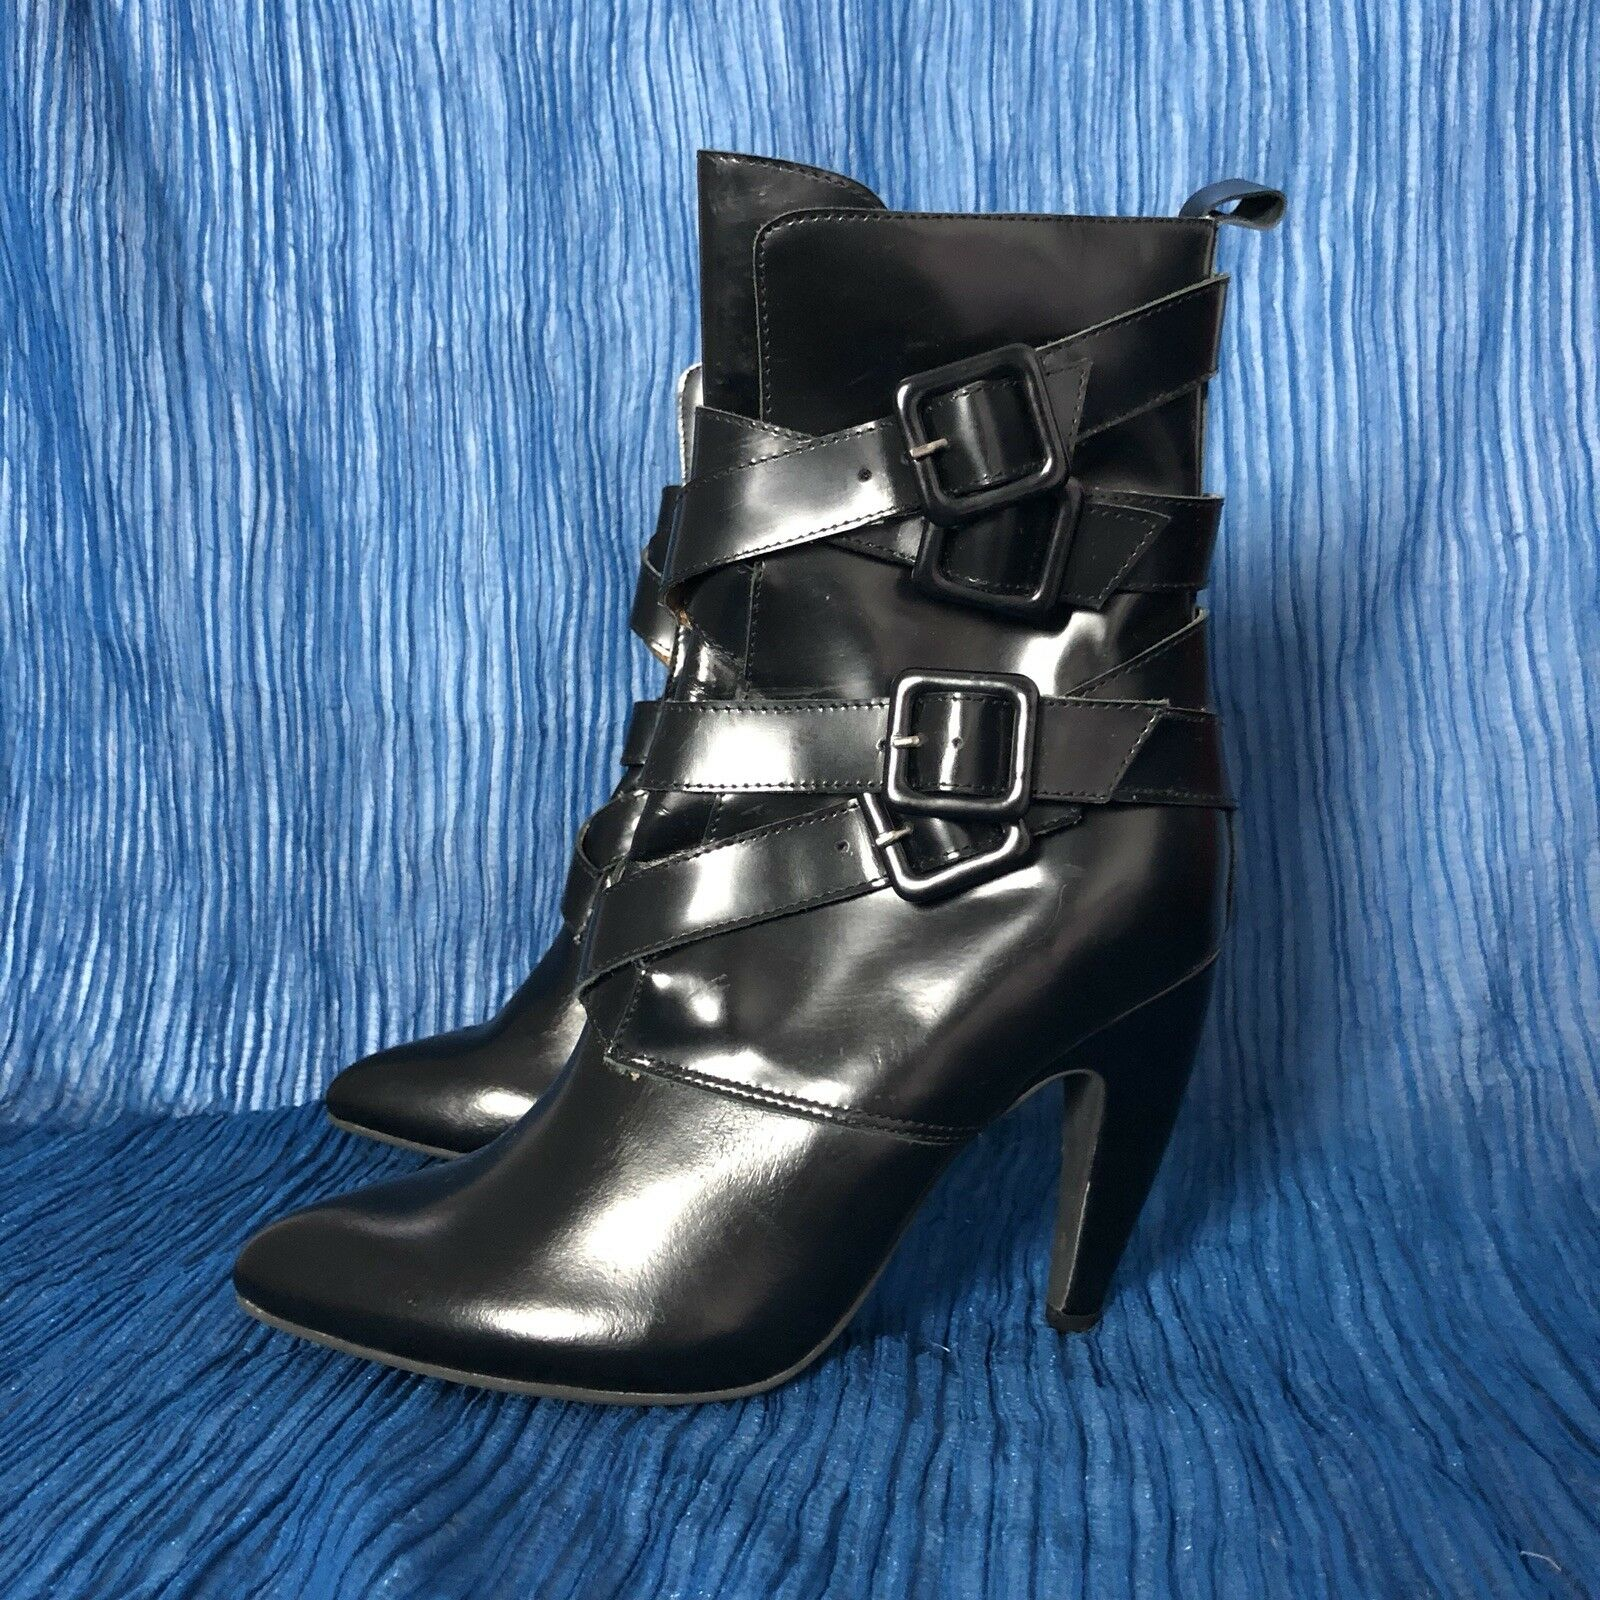 Men's/Women's jeffrey campbell boots Excellent craft High-quality materials Known for its beautiful quality